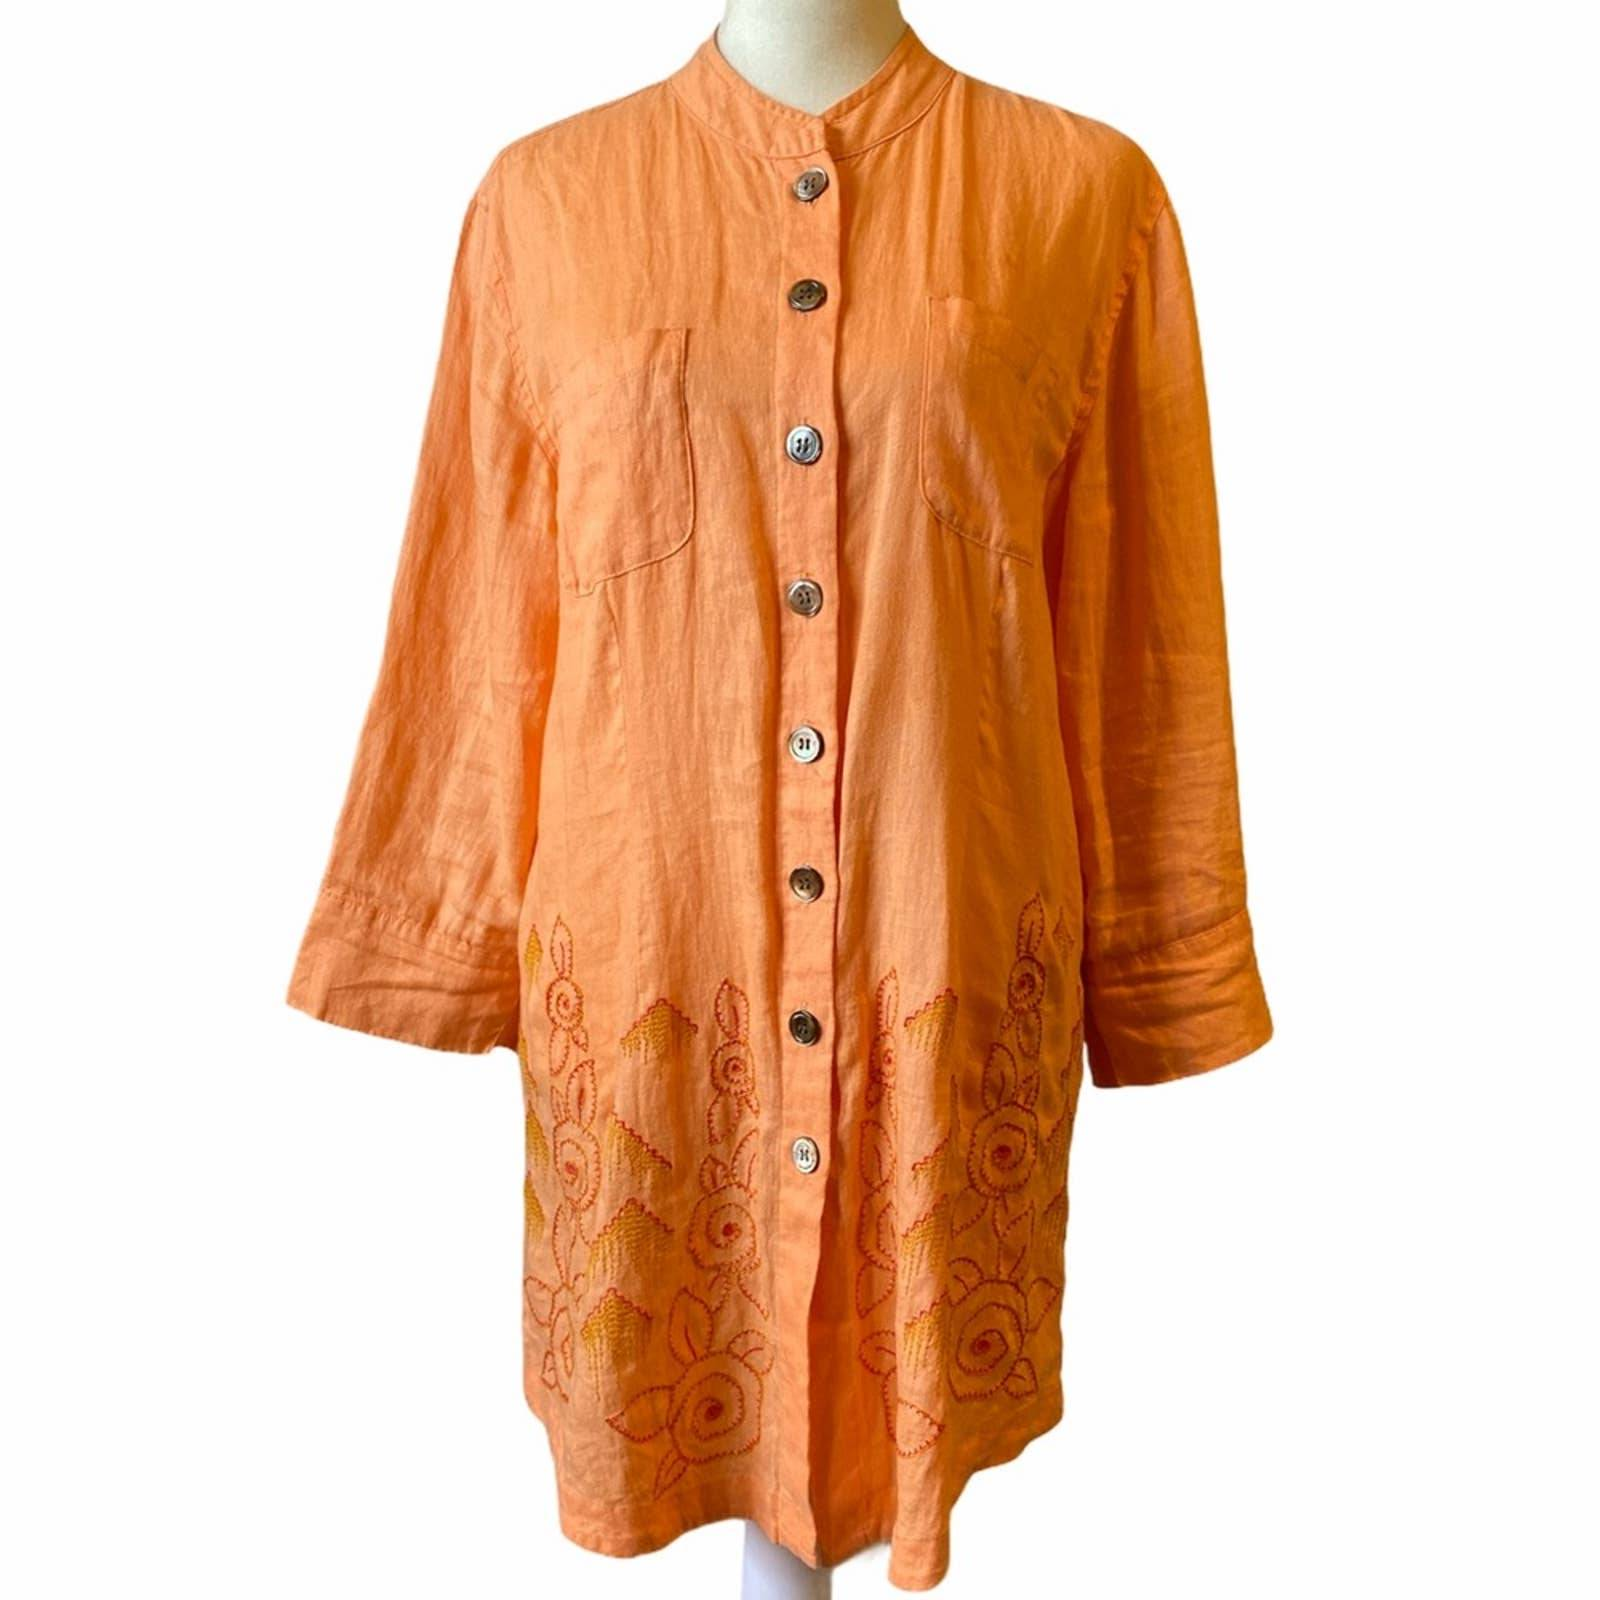 J. Jill NWT Linen Embroidered Tunic S